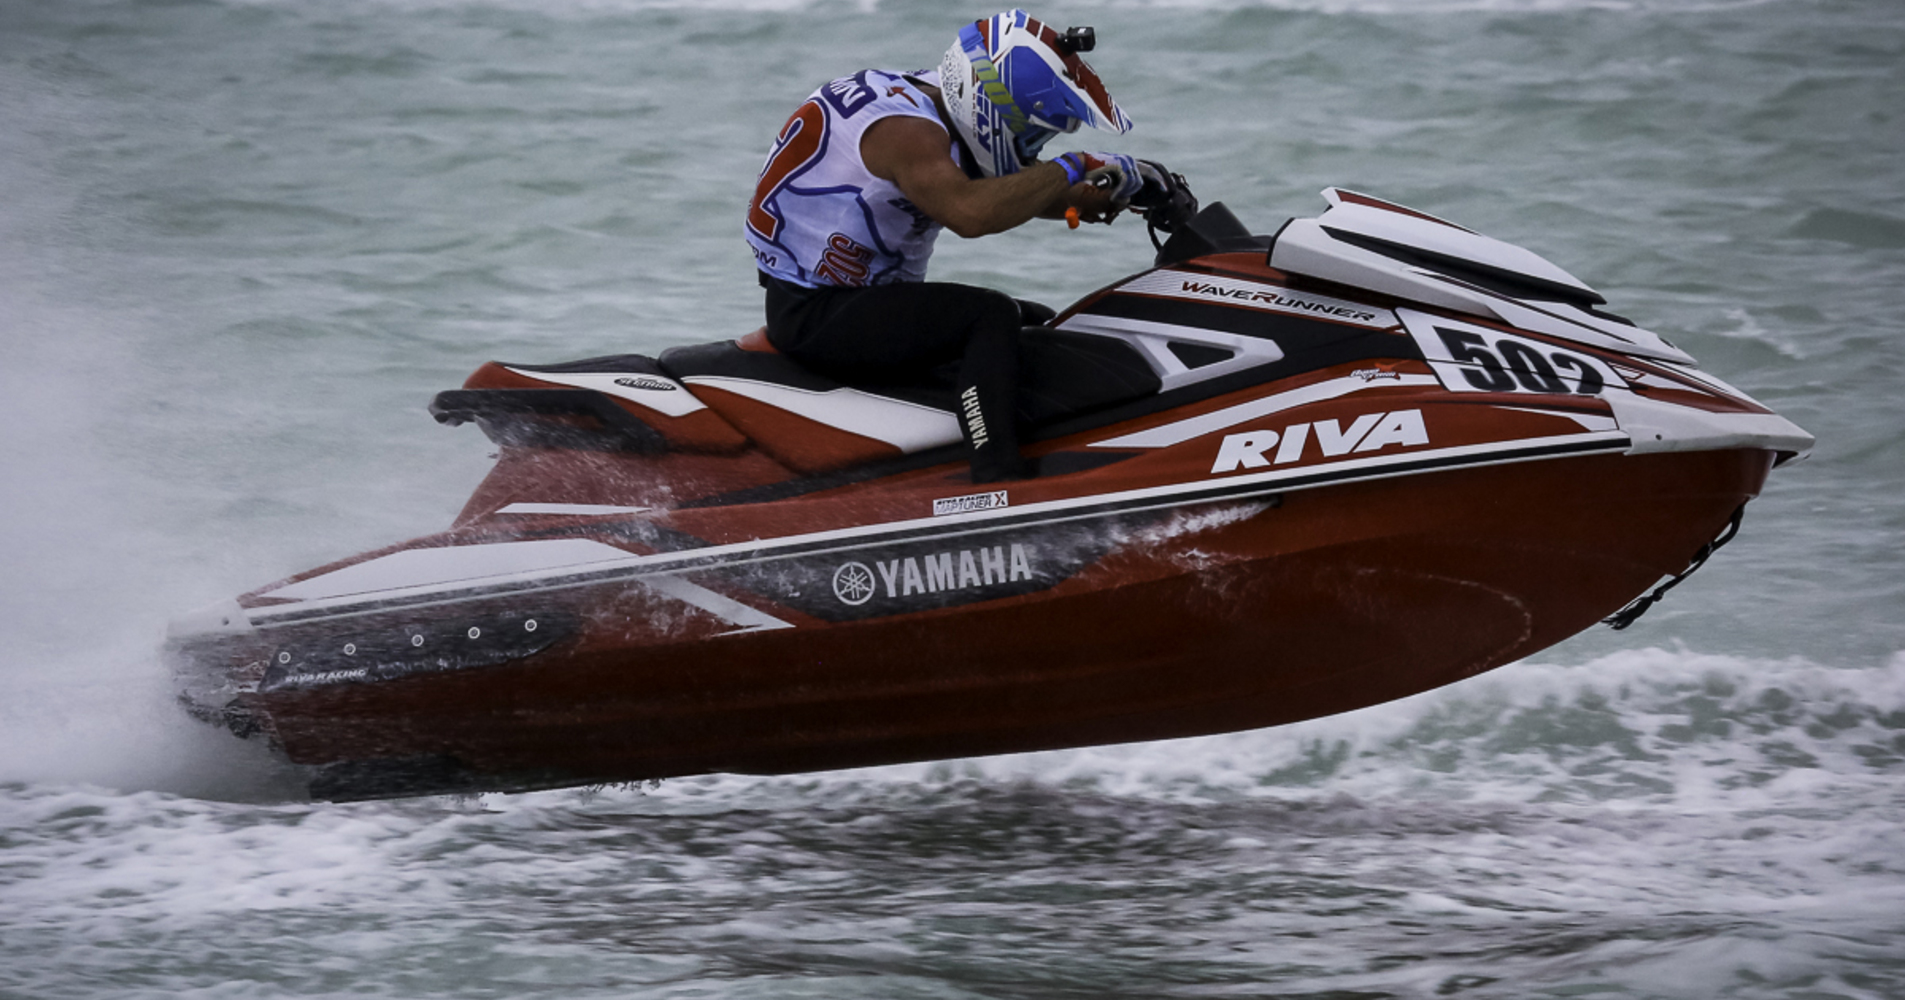 Baldwin only dropped seven points all weekend to become the first ever AquaX World Champion in Key West